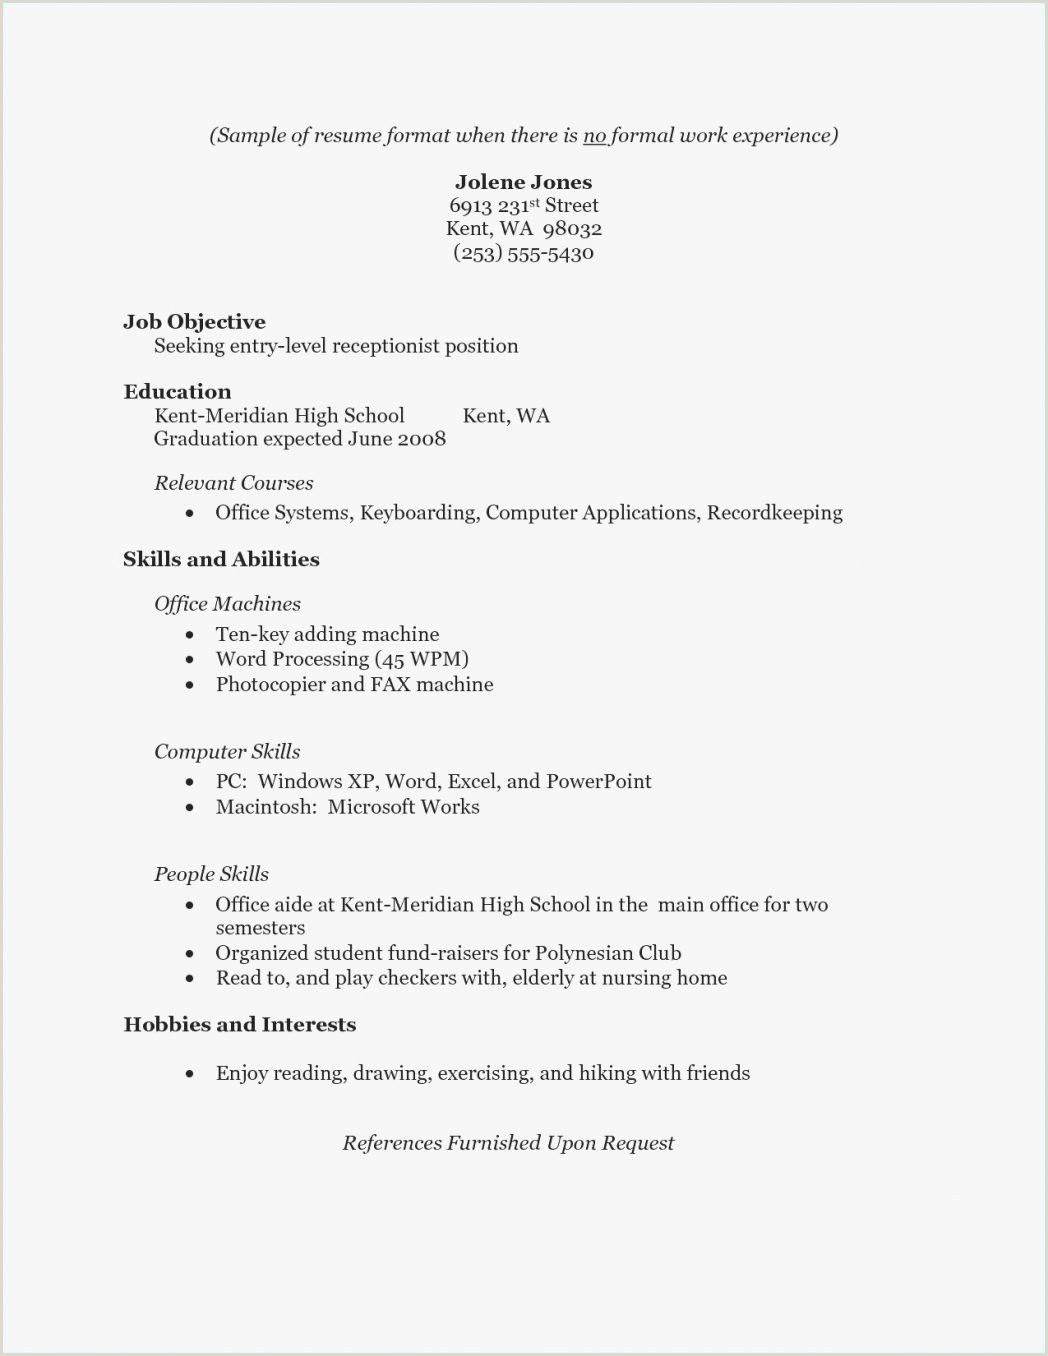 Resume format for Job Application In Word Resume for Receptionist with No Experience Unique Nanny